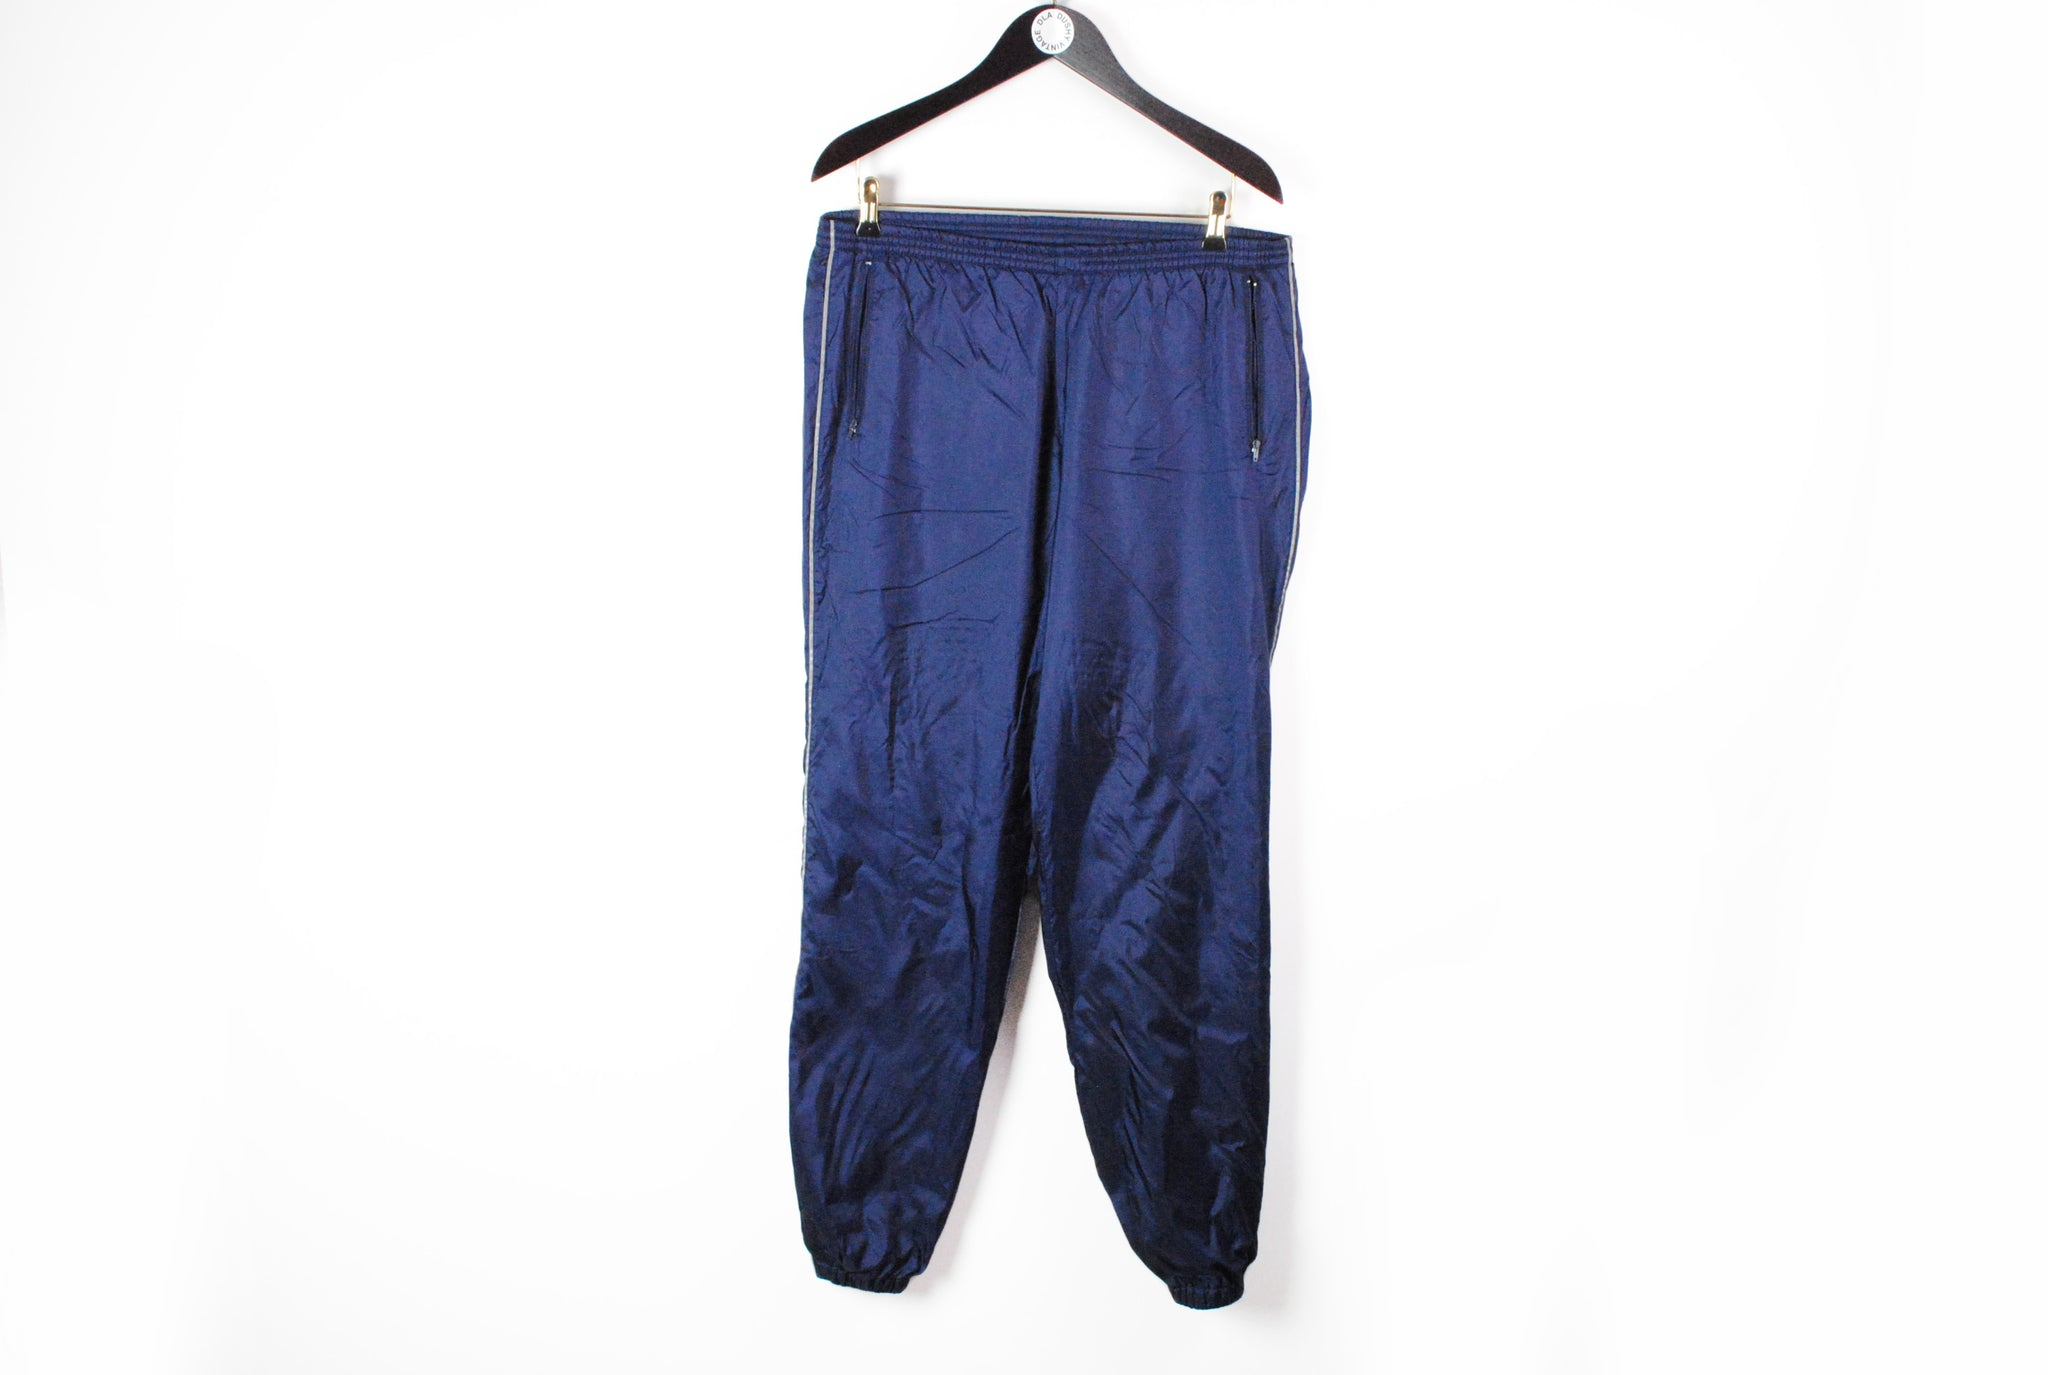 Vintage Adidas Track Pants Large navy blue 90s sport style retro wear